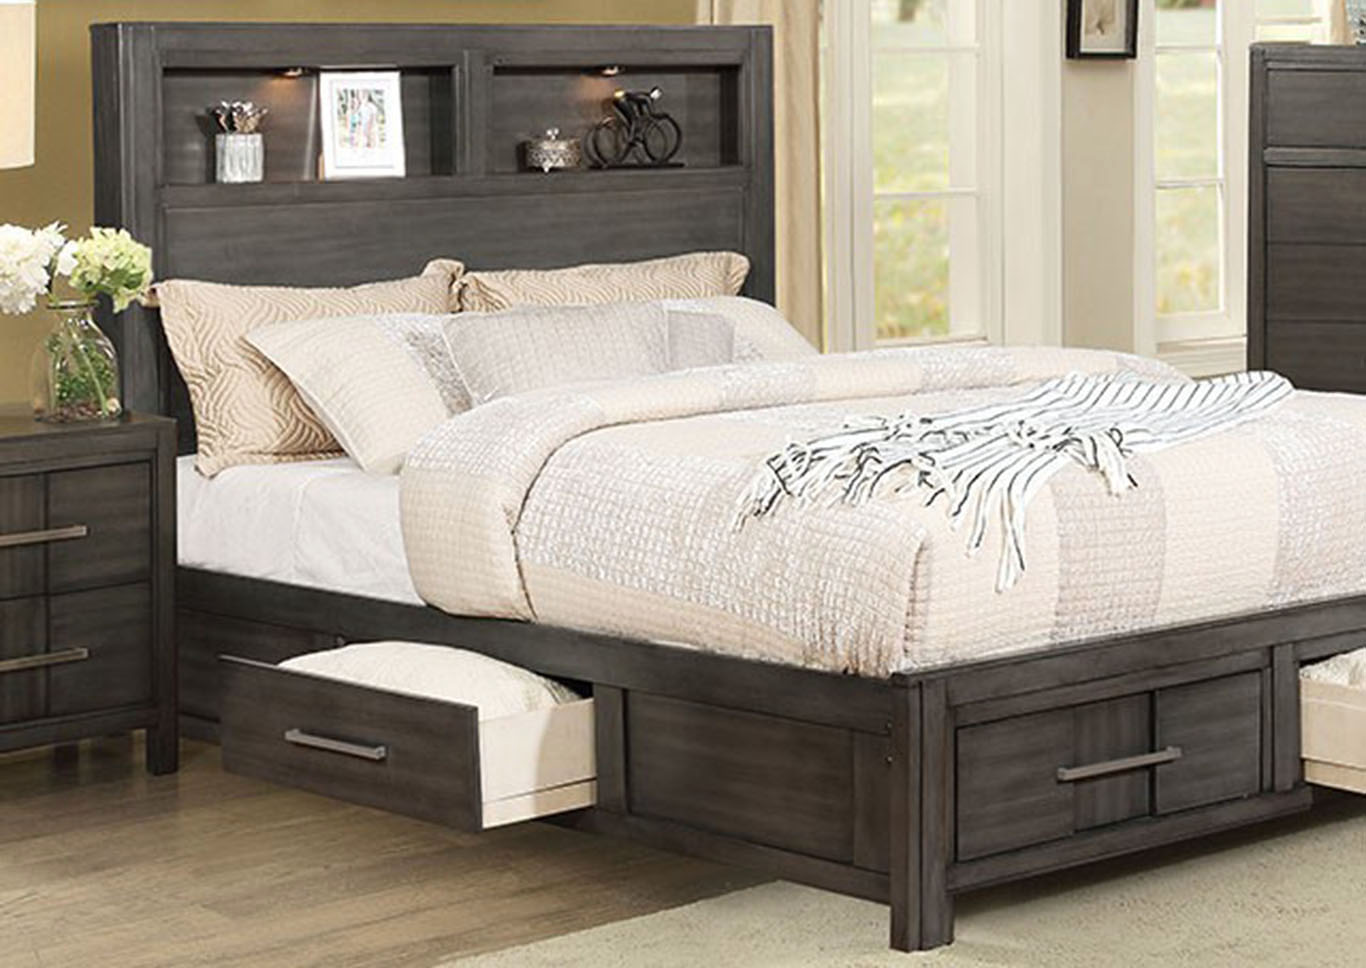 Karla Gray Queen Bookcase Storage Bed,Furniture of America